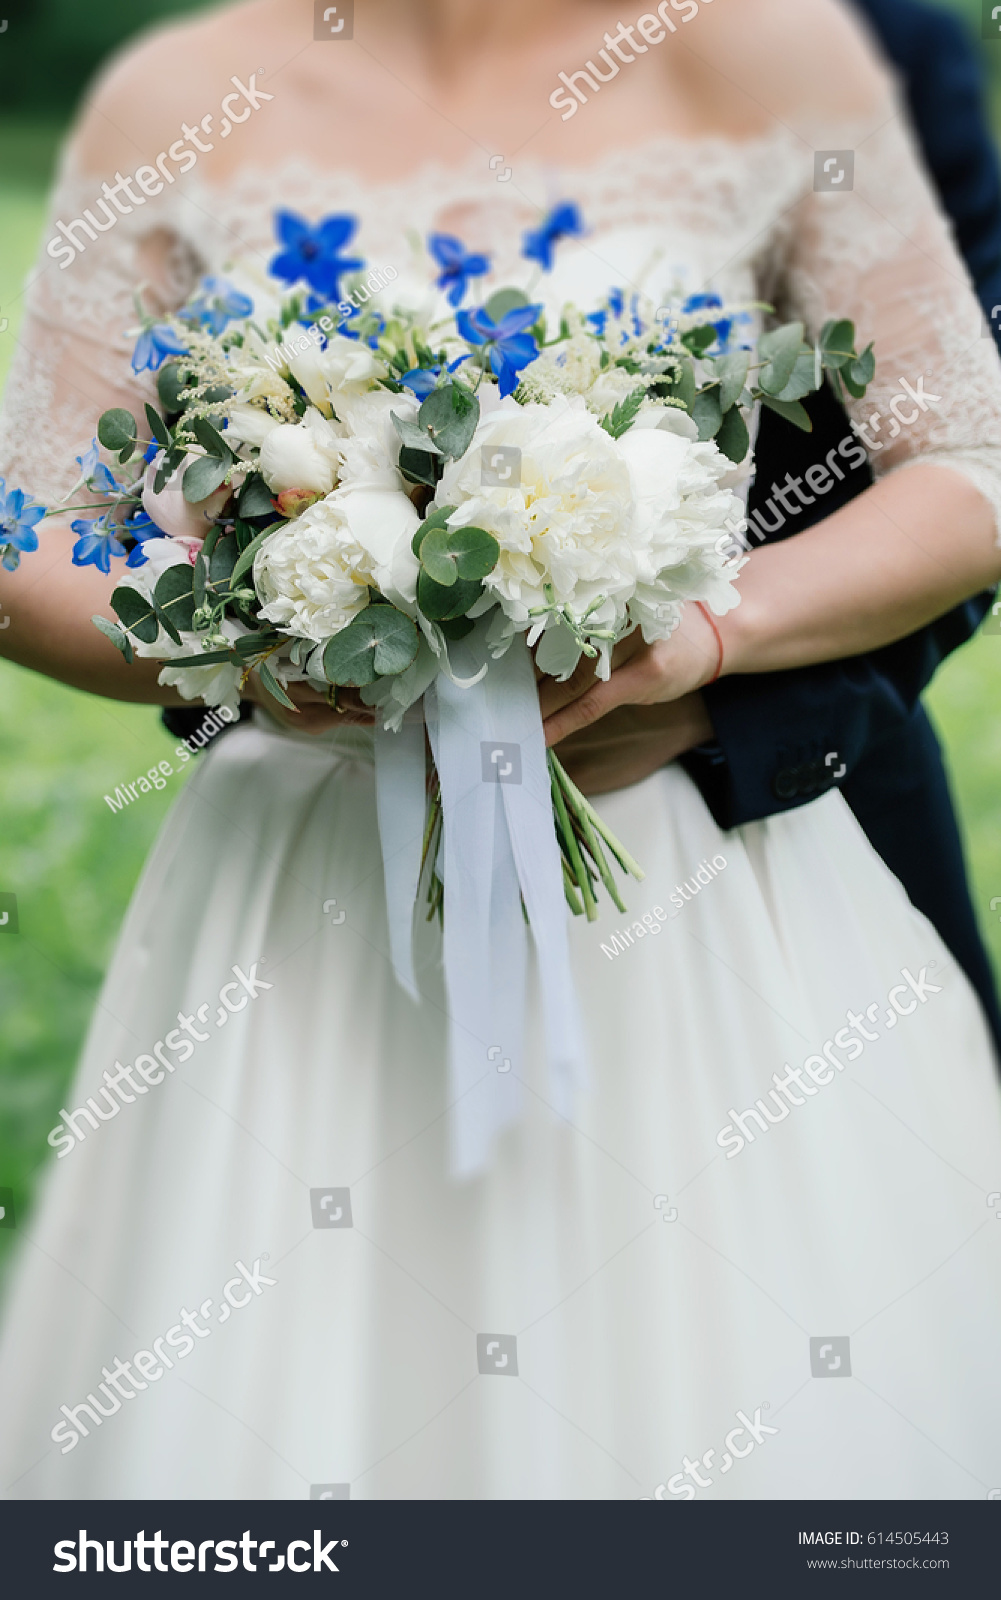 Wedding Bouquet Peonies Blue Flowers Greenery Stock Photo Edit Now